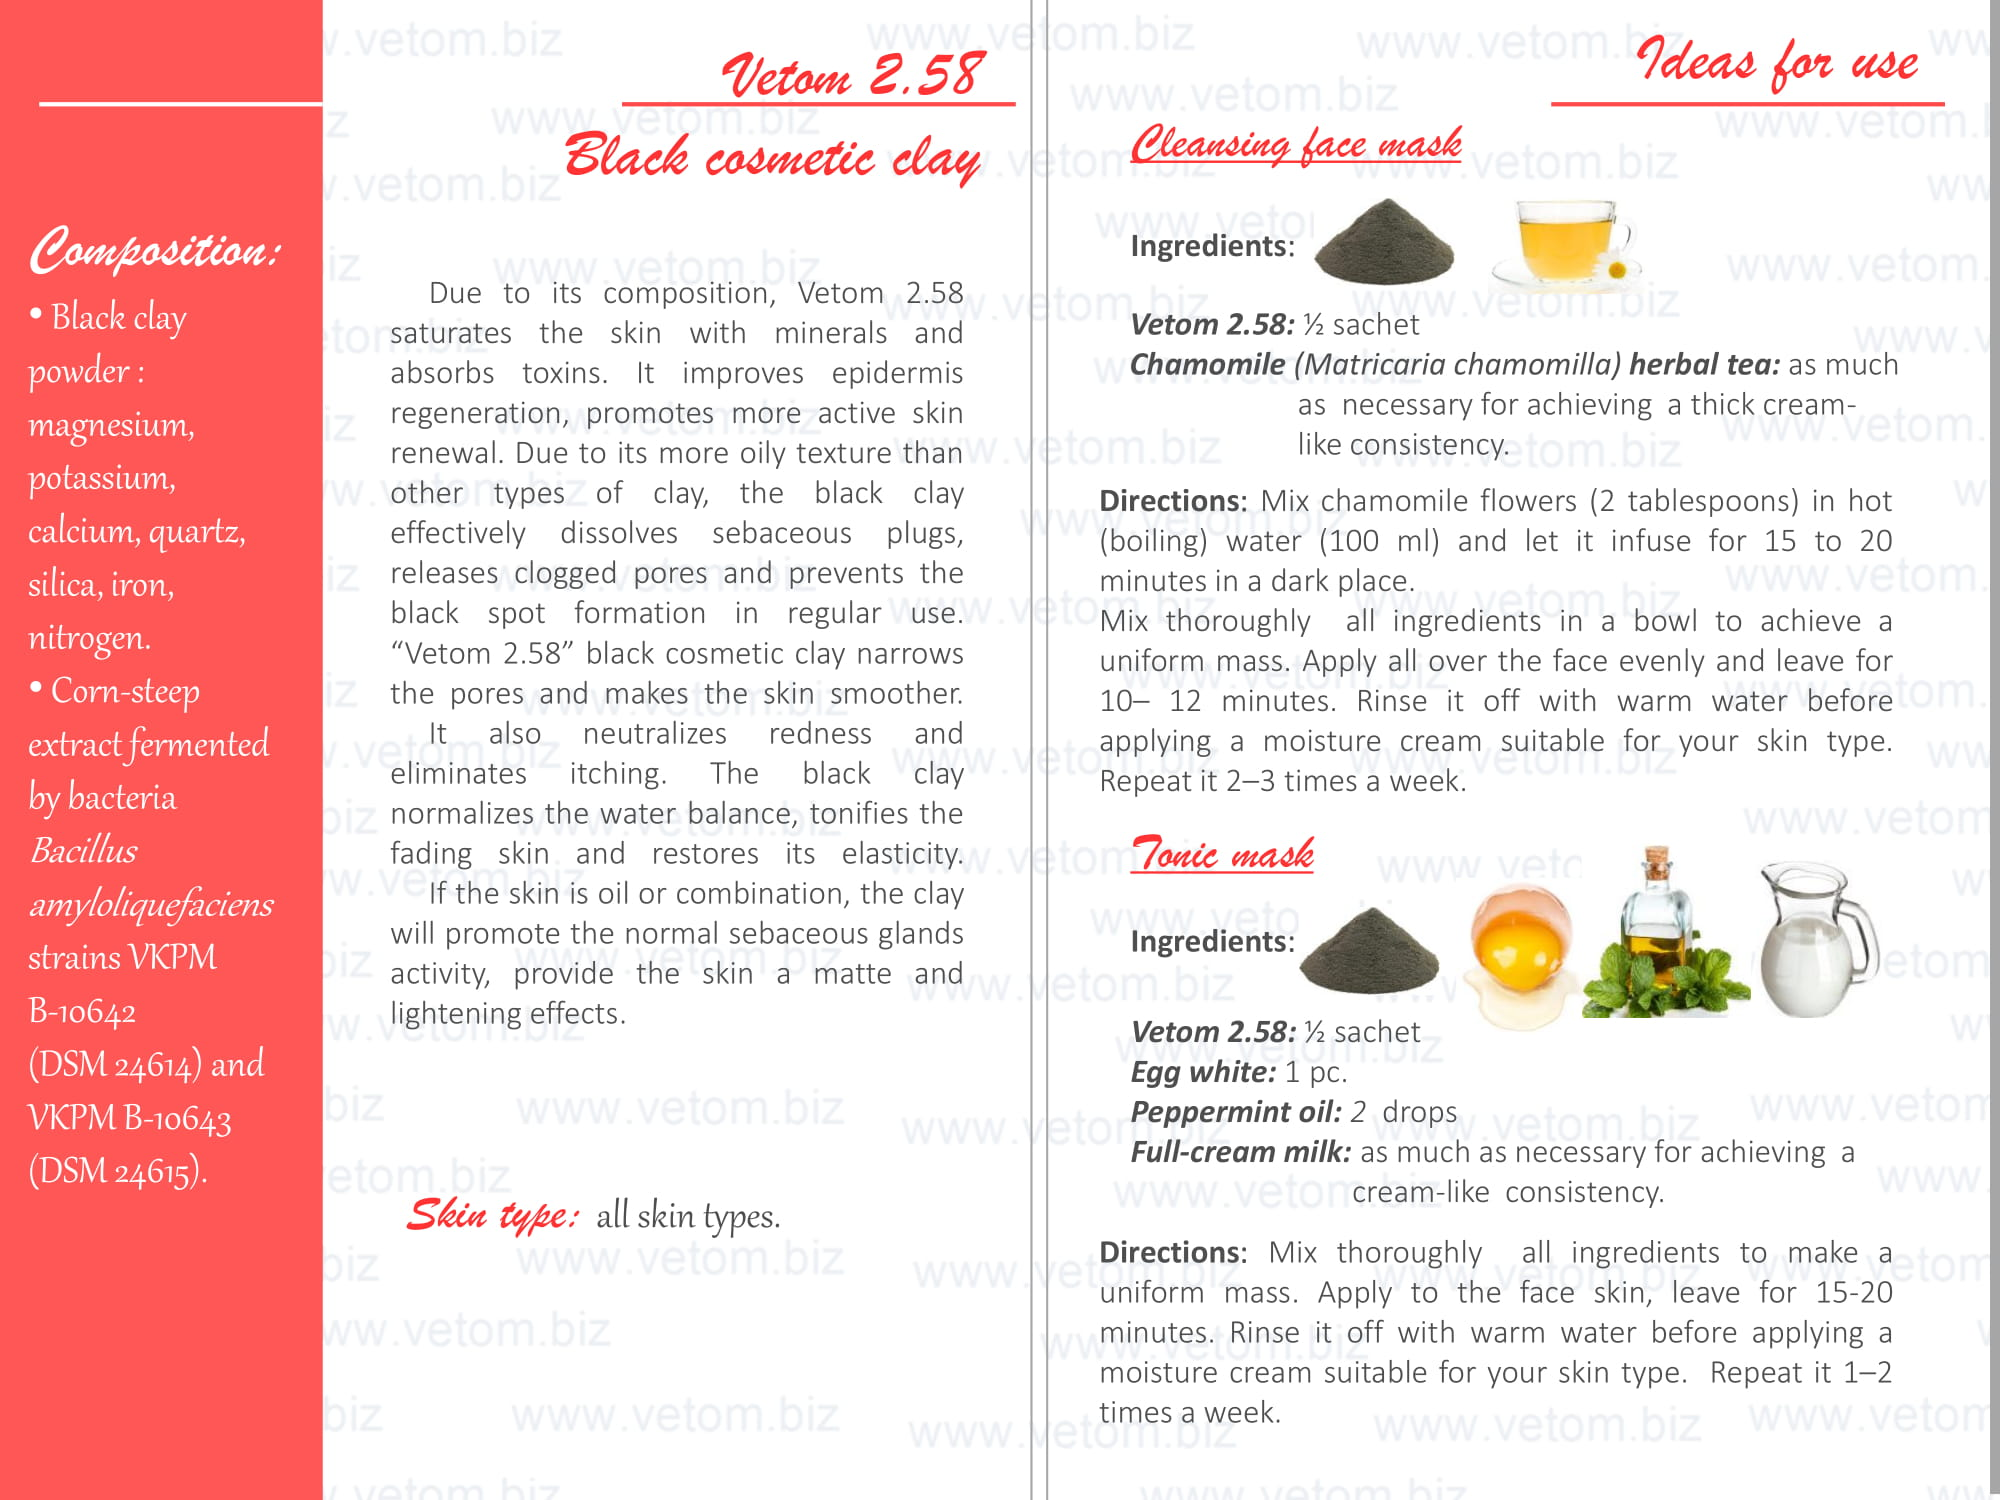 Vetom 2.58 - Black cosmetic clay for all skin types. Ideas for use: Cleansing face mask, Tonic mask.